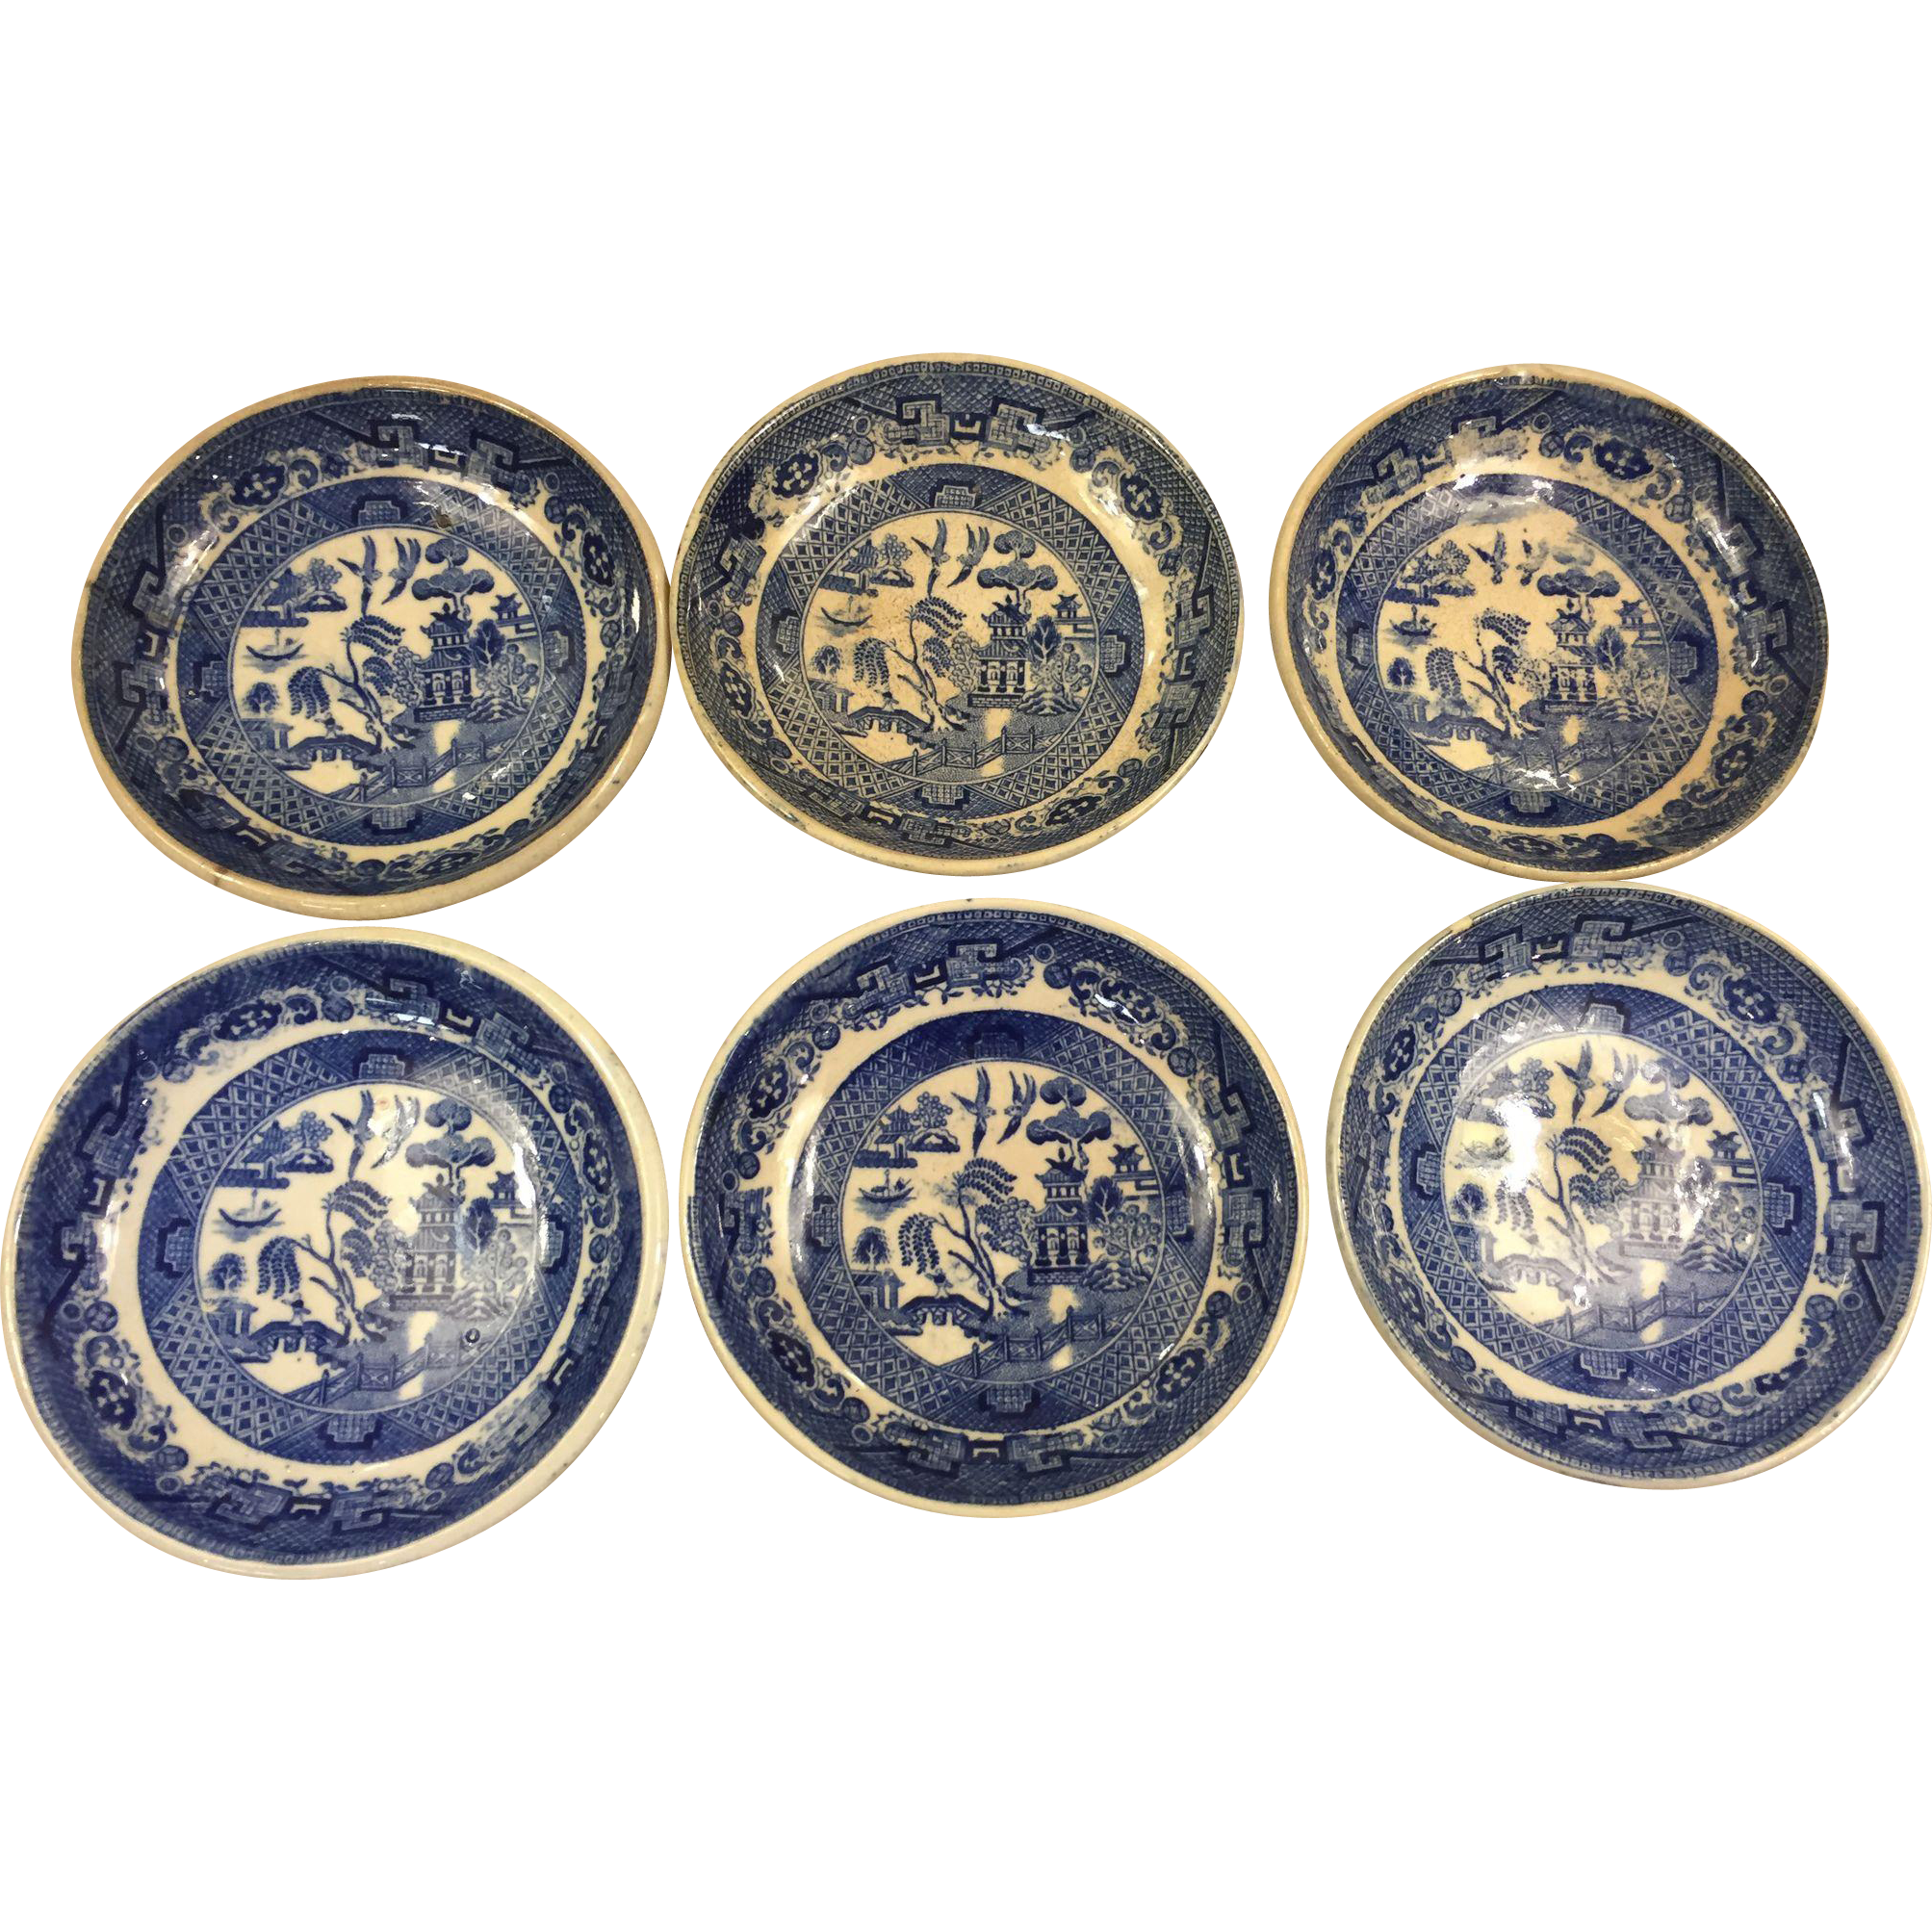 Set of 6 Blue Willow Butter Pats, Ridgways England, c.1915